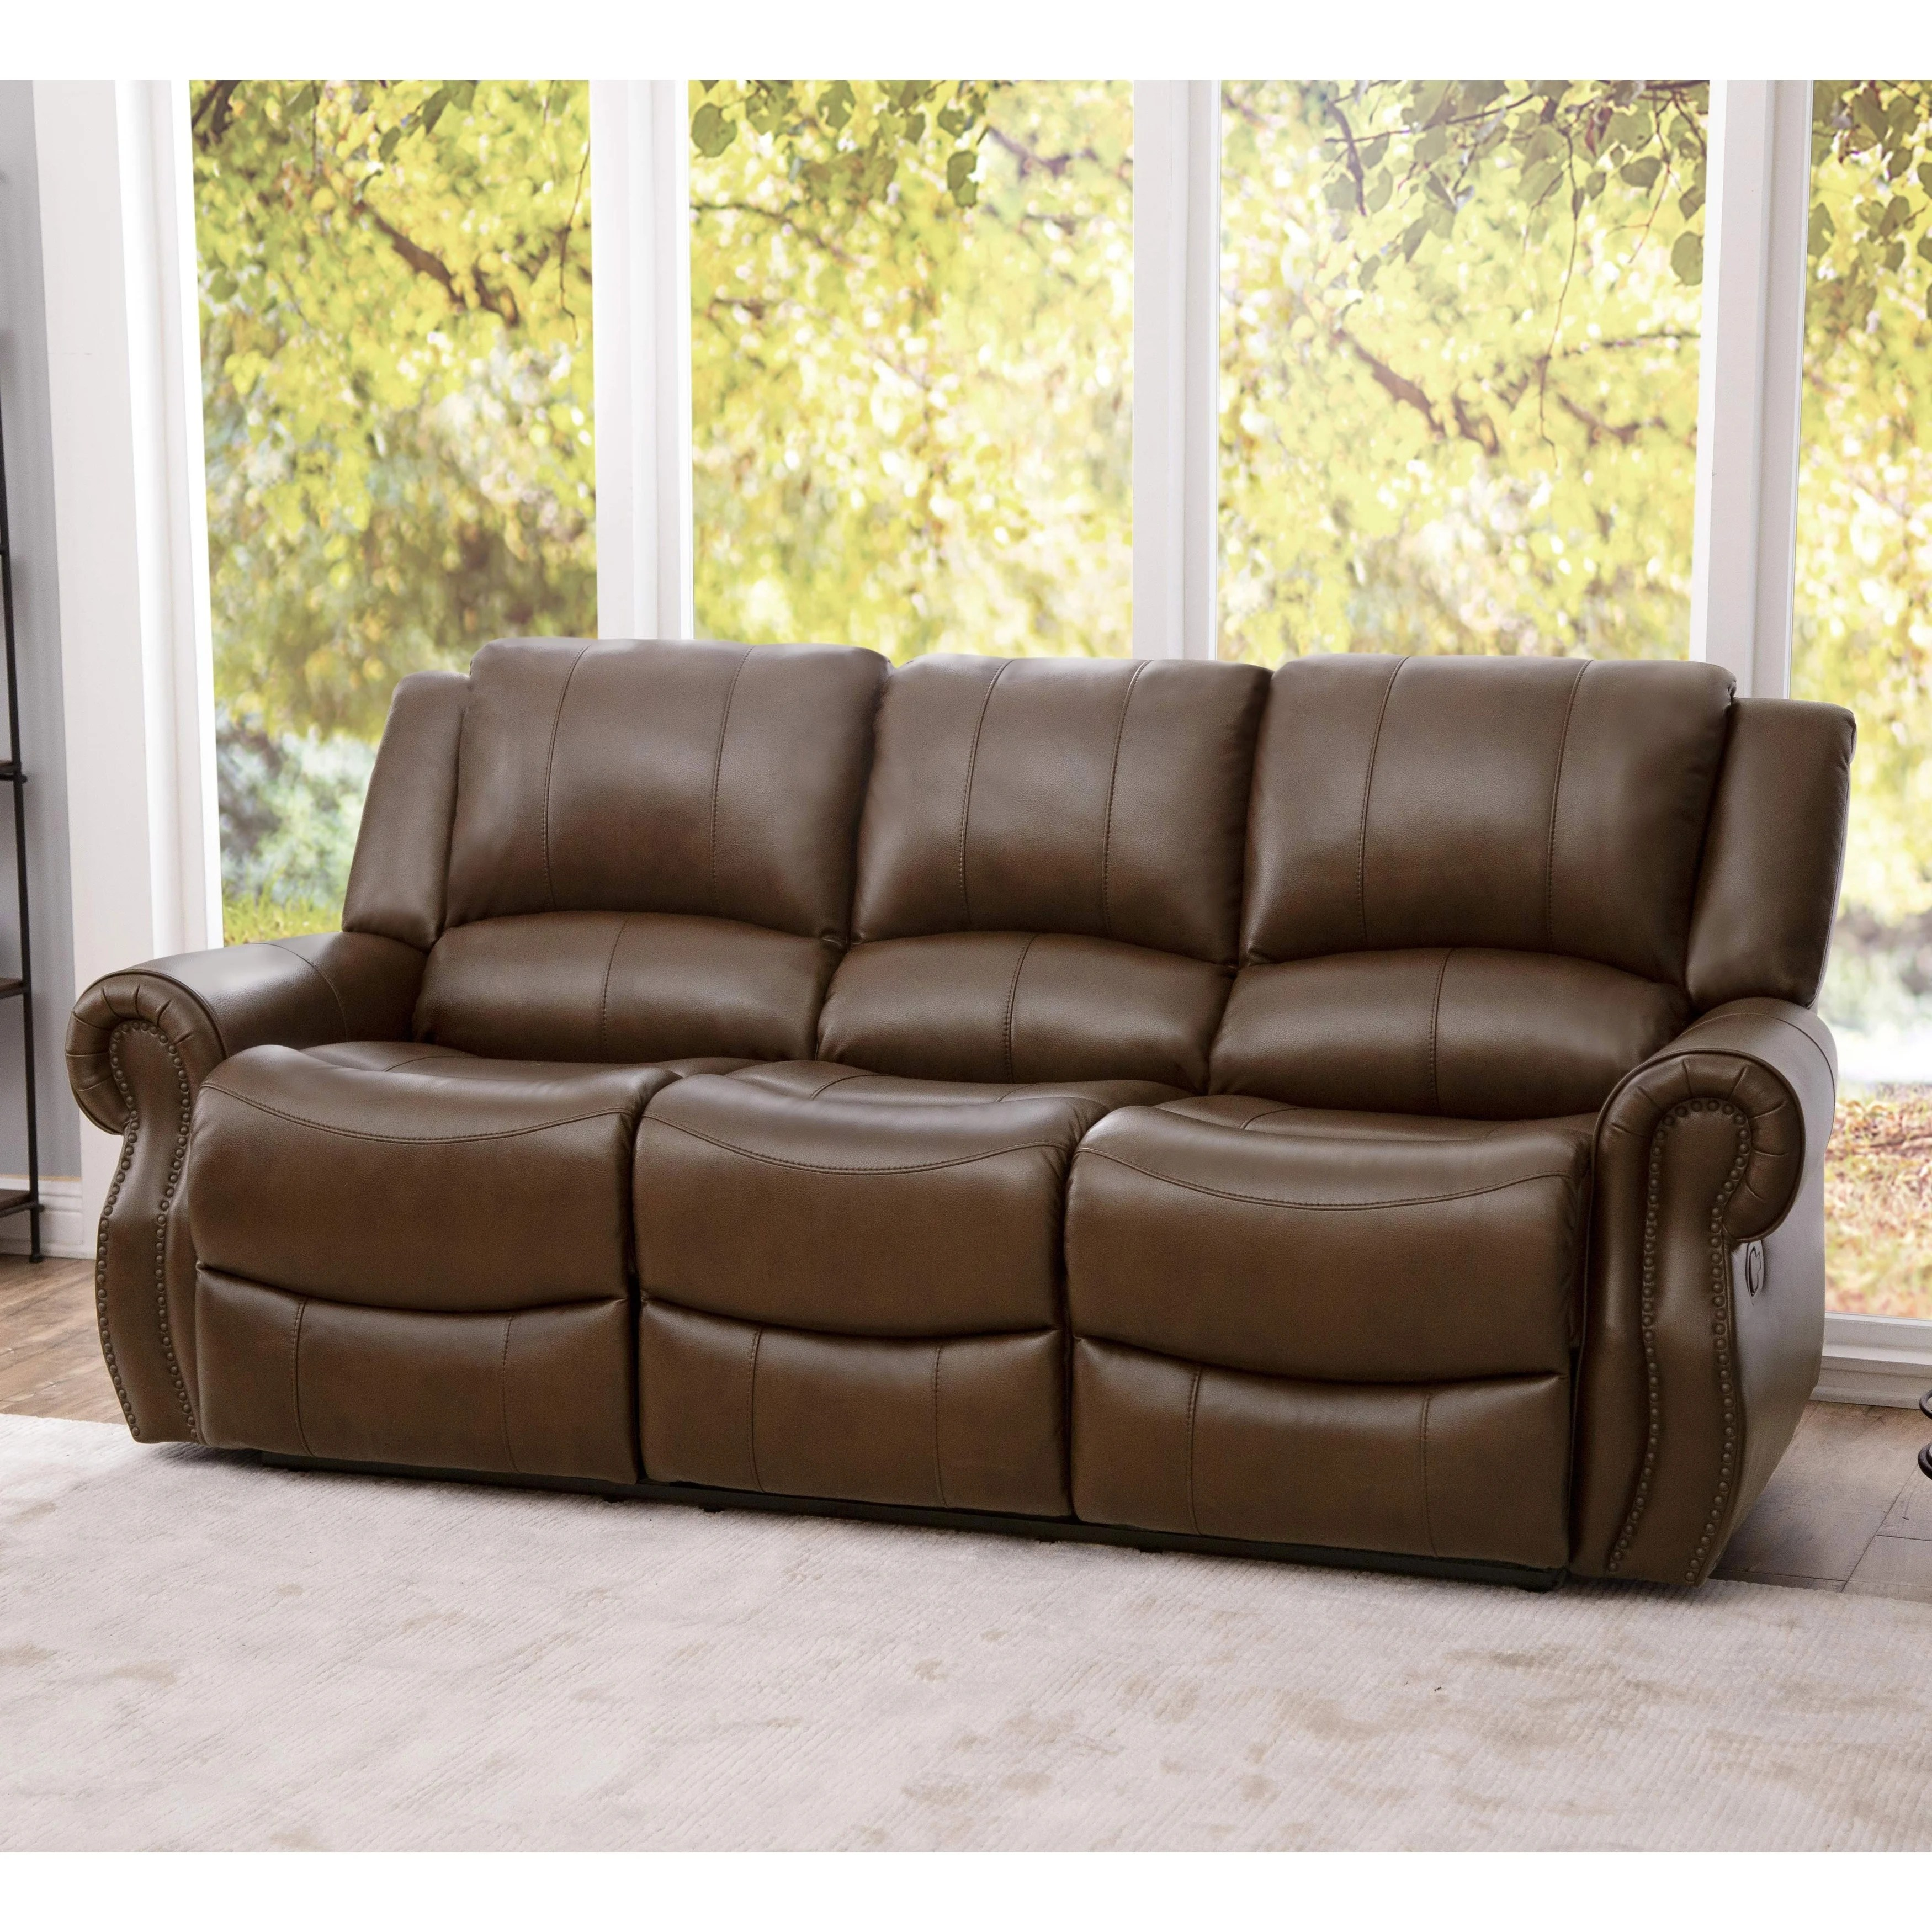 recliner living room set family decor ideas shop abbyson calabasas mesa brown leather 3 piece reclining on sale free shipping today overstock com 10555965